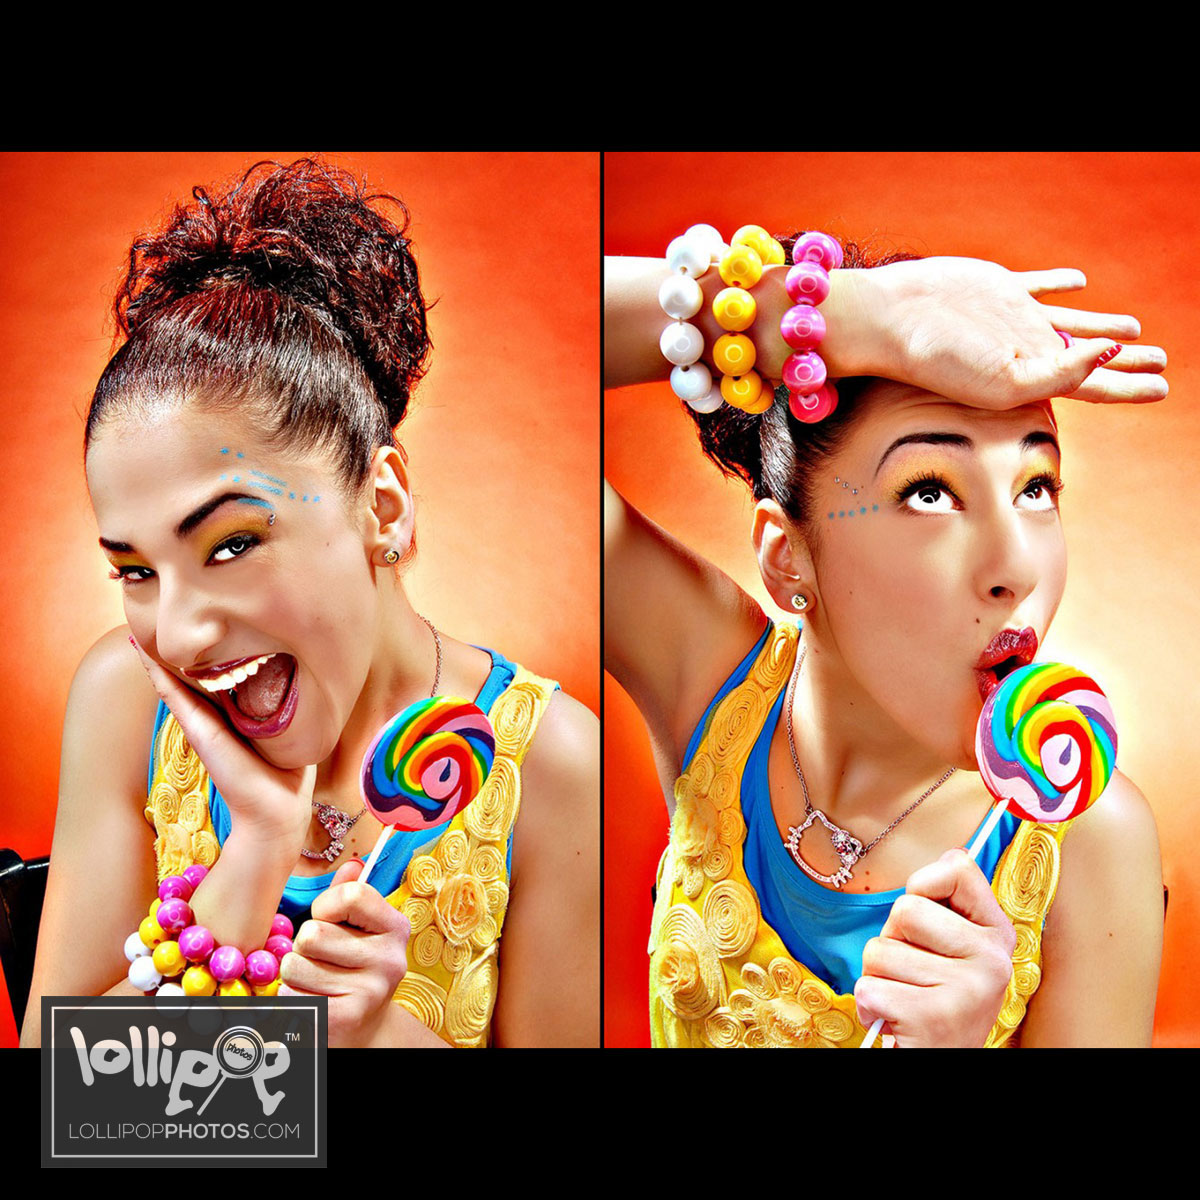 msdig-nora-canfield-lollipop-photos-538.jpg